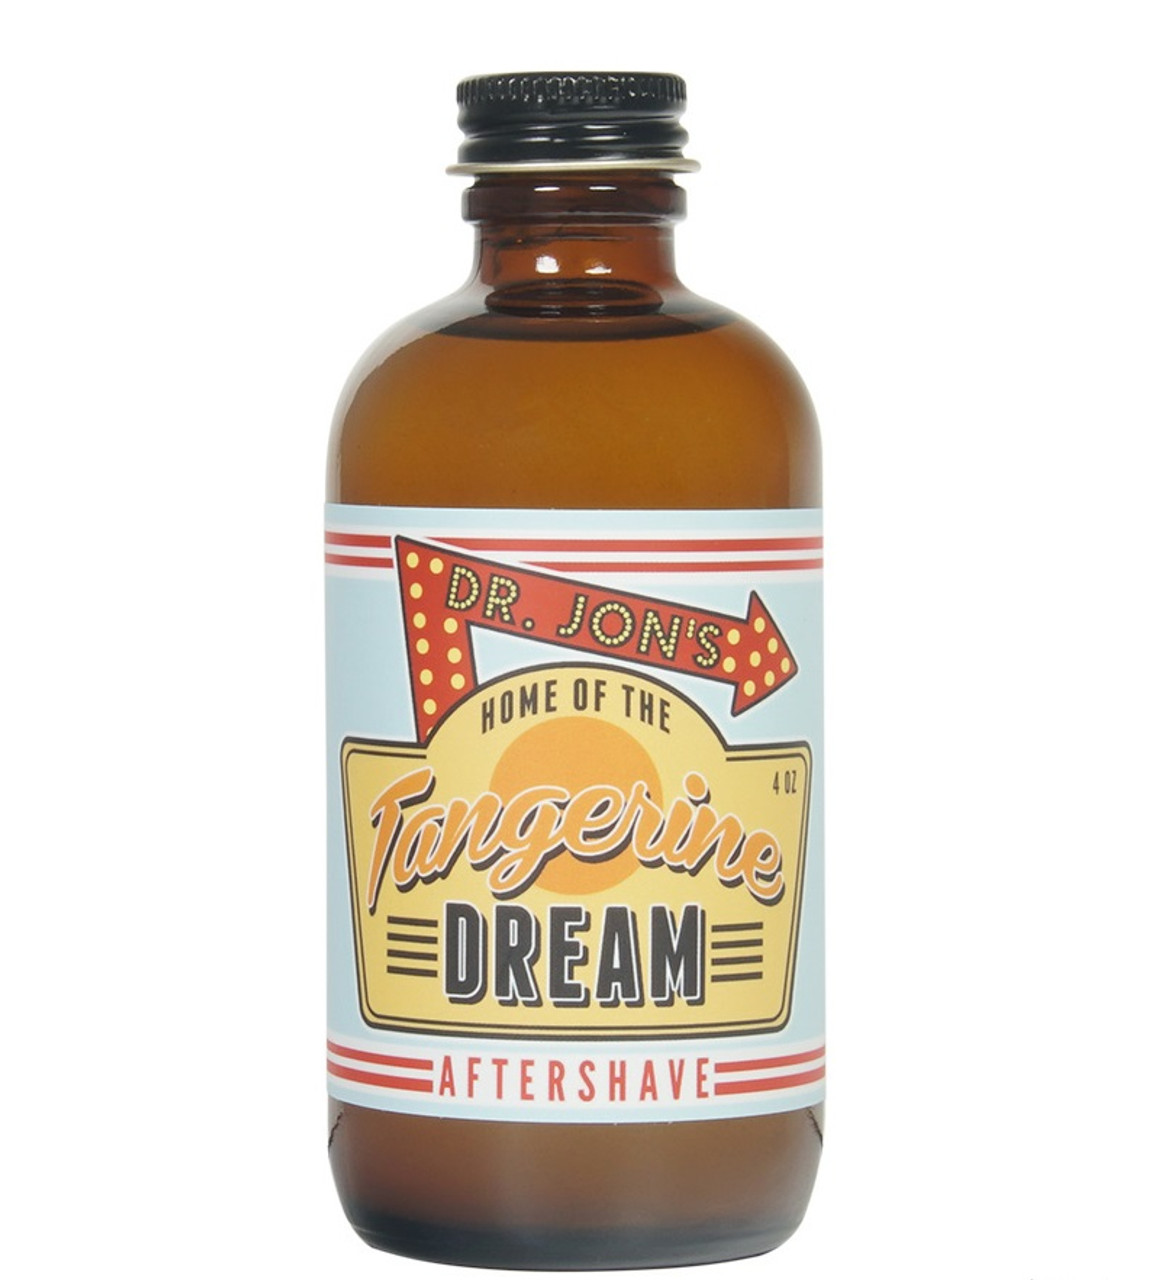 Dr. Jon's Tangerine Dream Aftershave 4oz